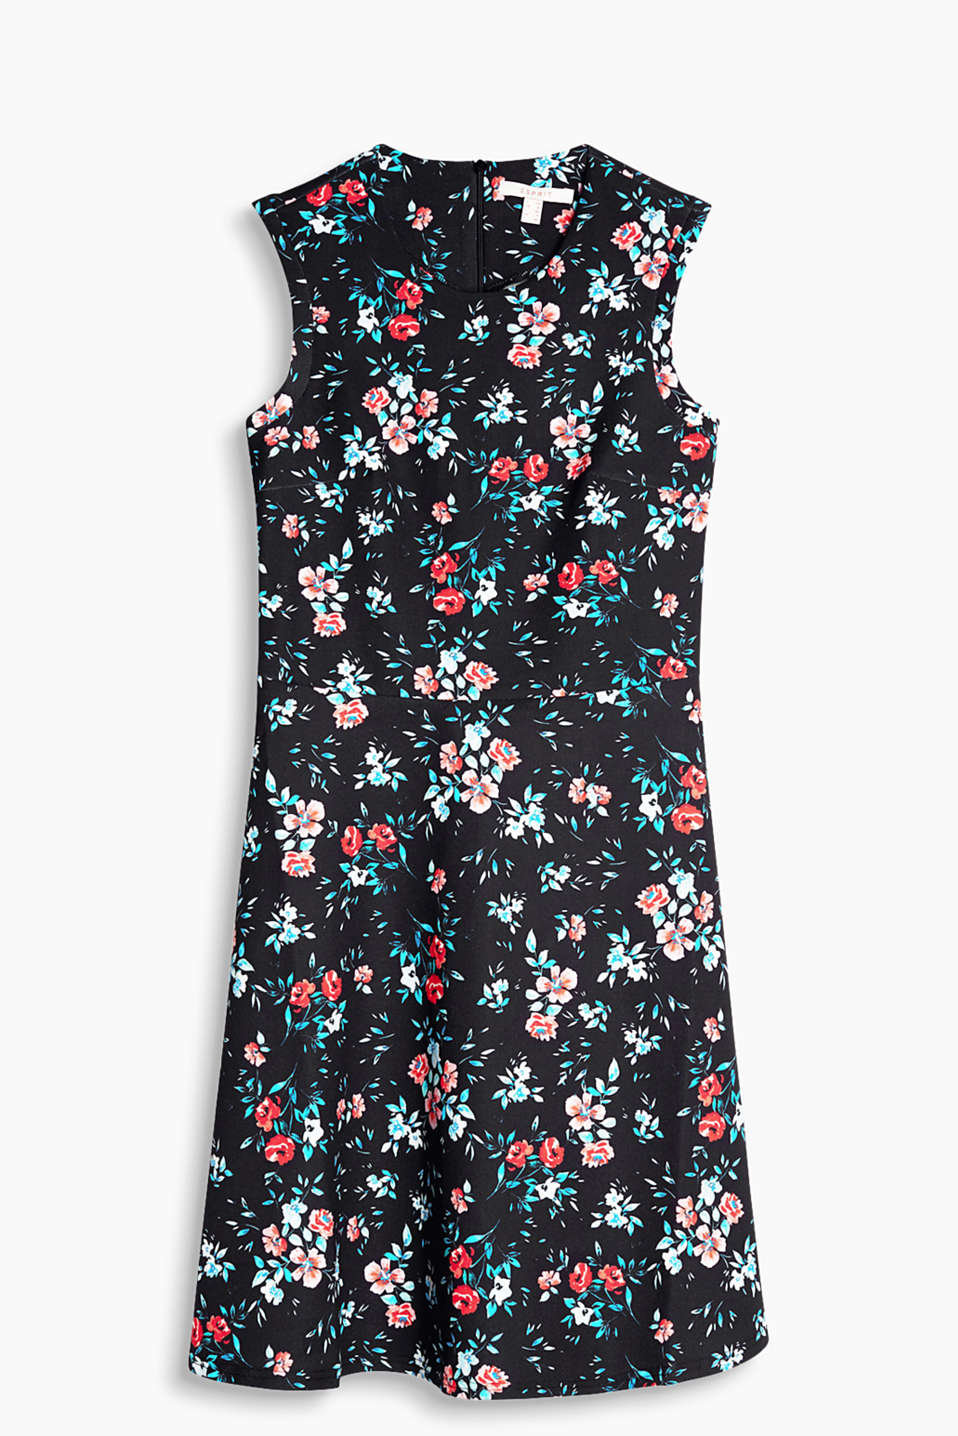 Cheery dress in thick stretch jersey with a floral print